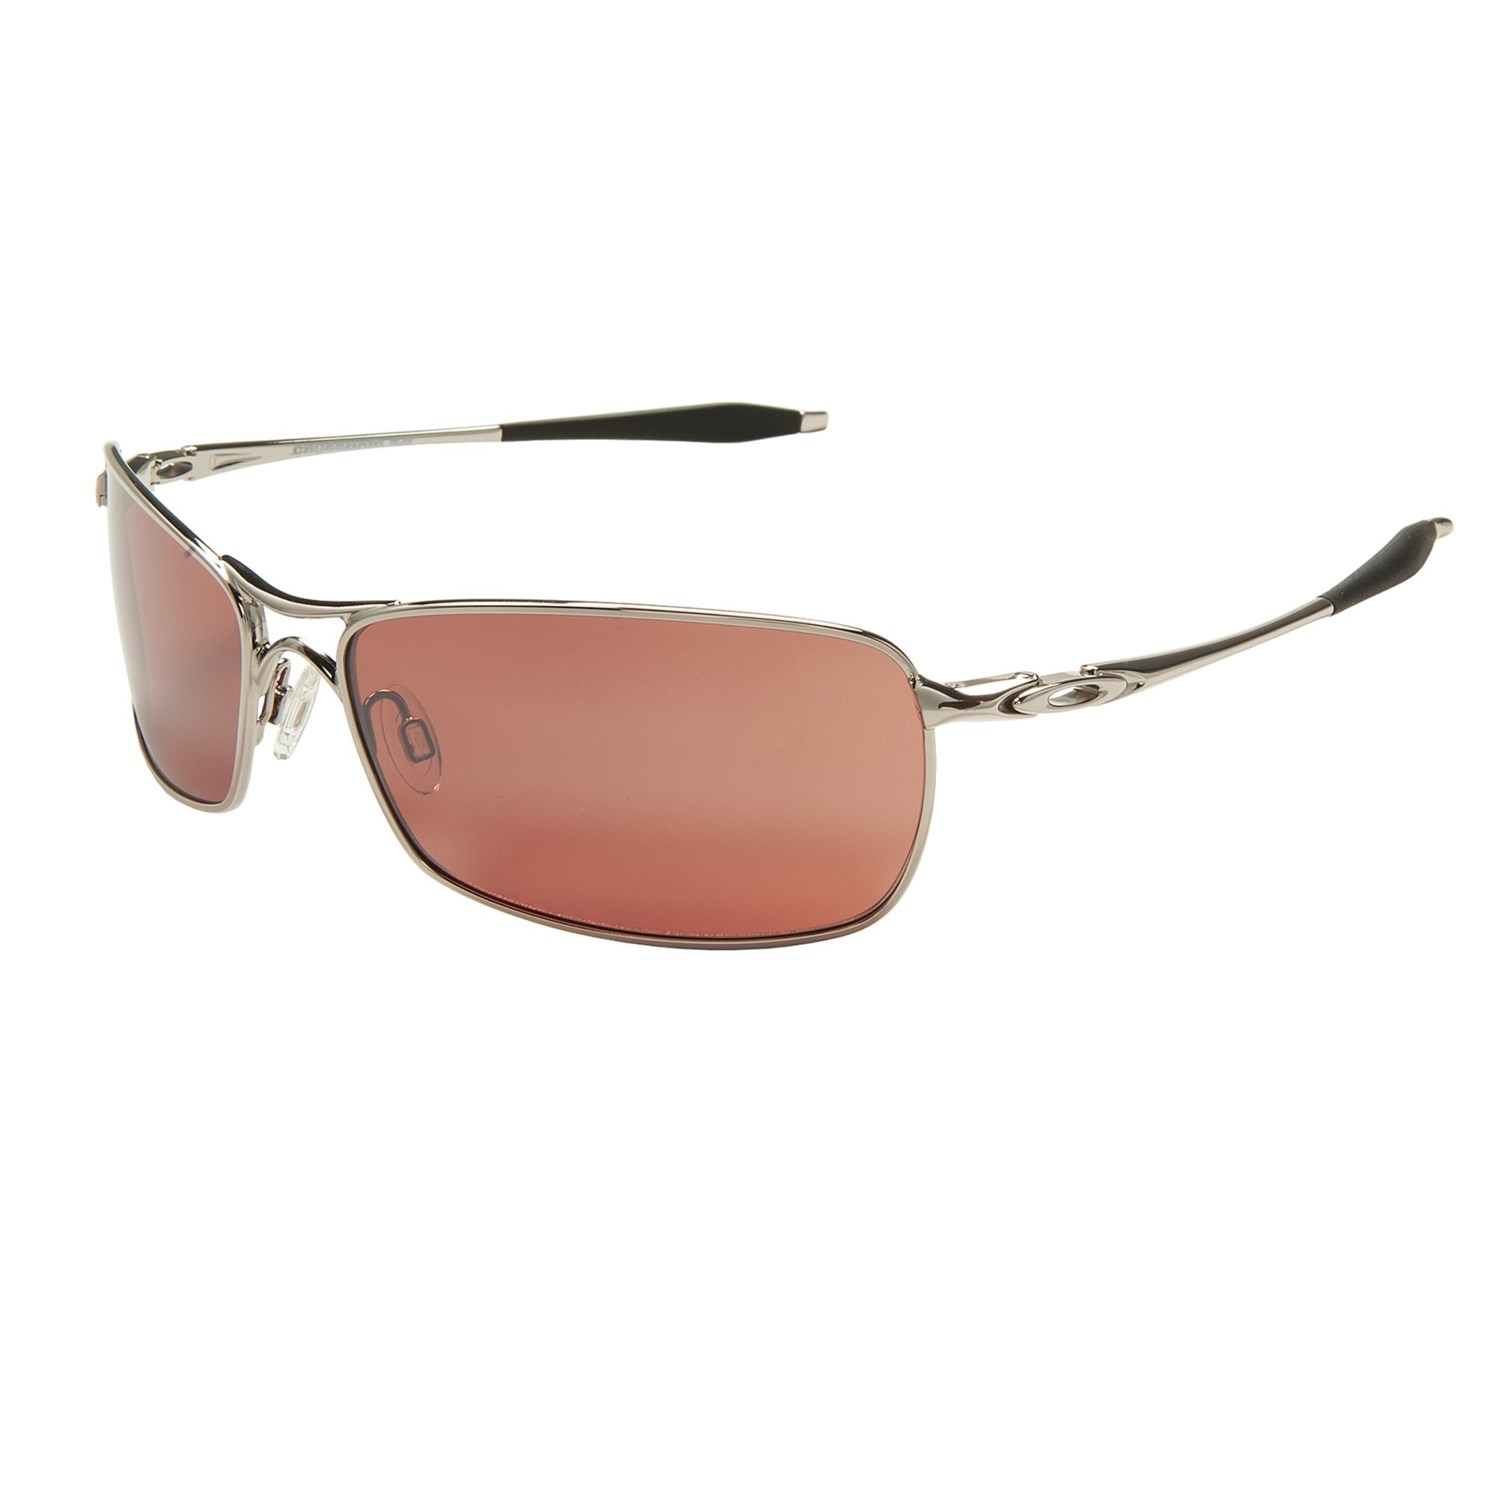 e90ba1905a Oakley Crosshair 2.0 Sunglasses Reviews « Heritage Malta